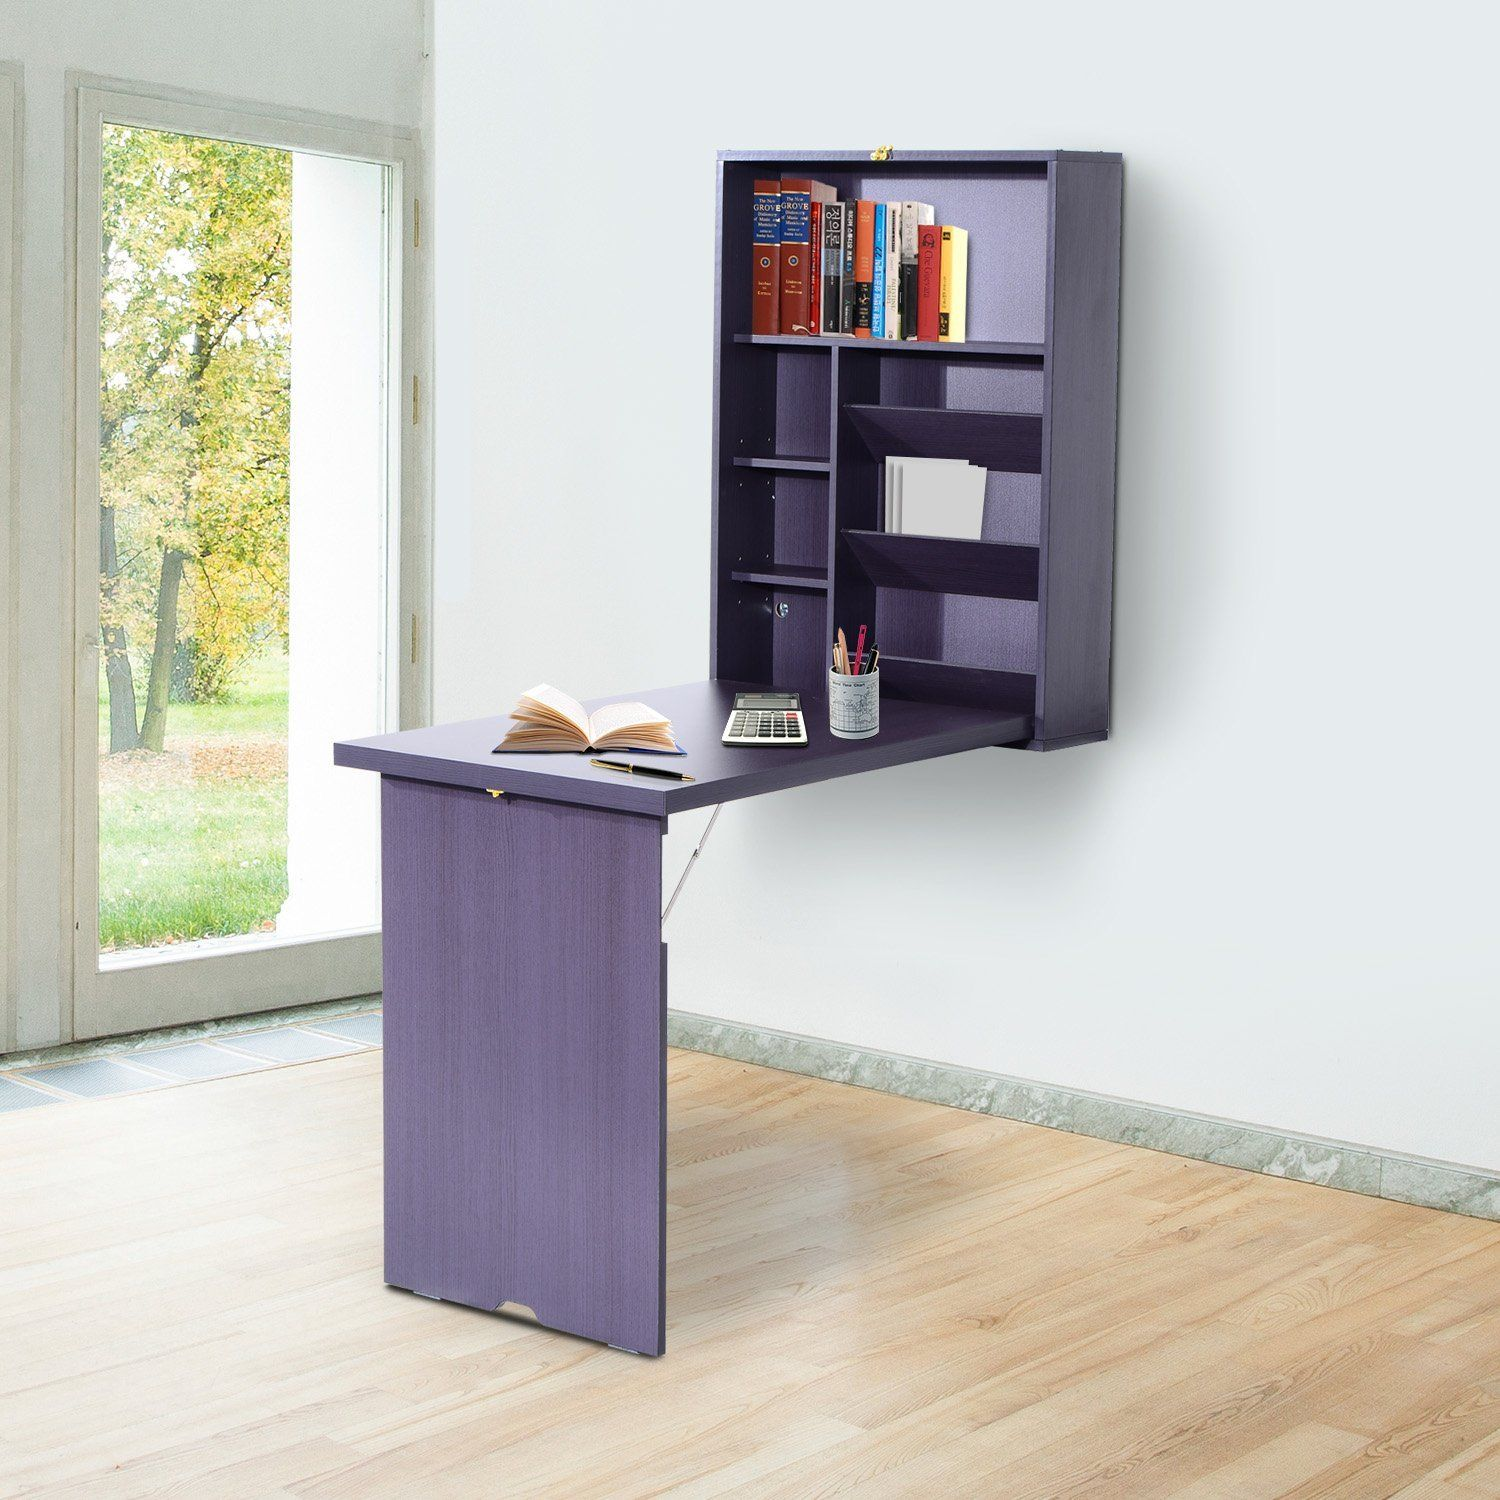 Fold Out Convertible Wall Mount Desk Espresso